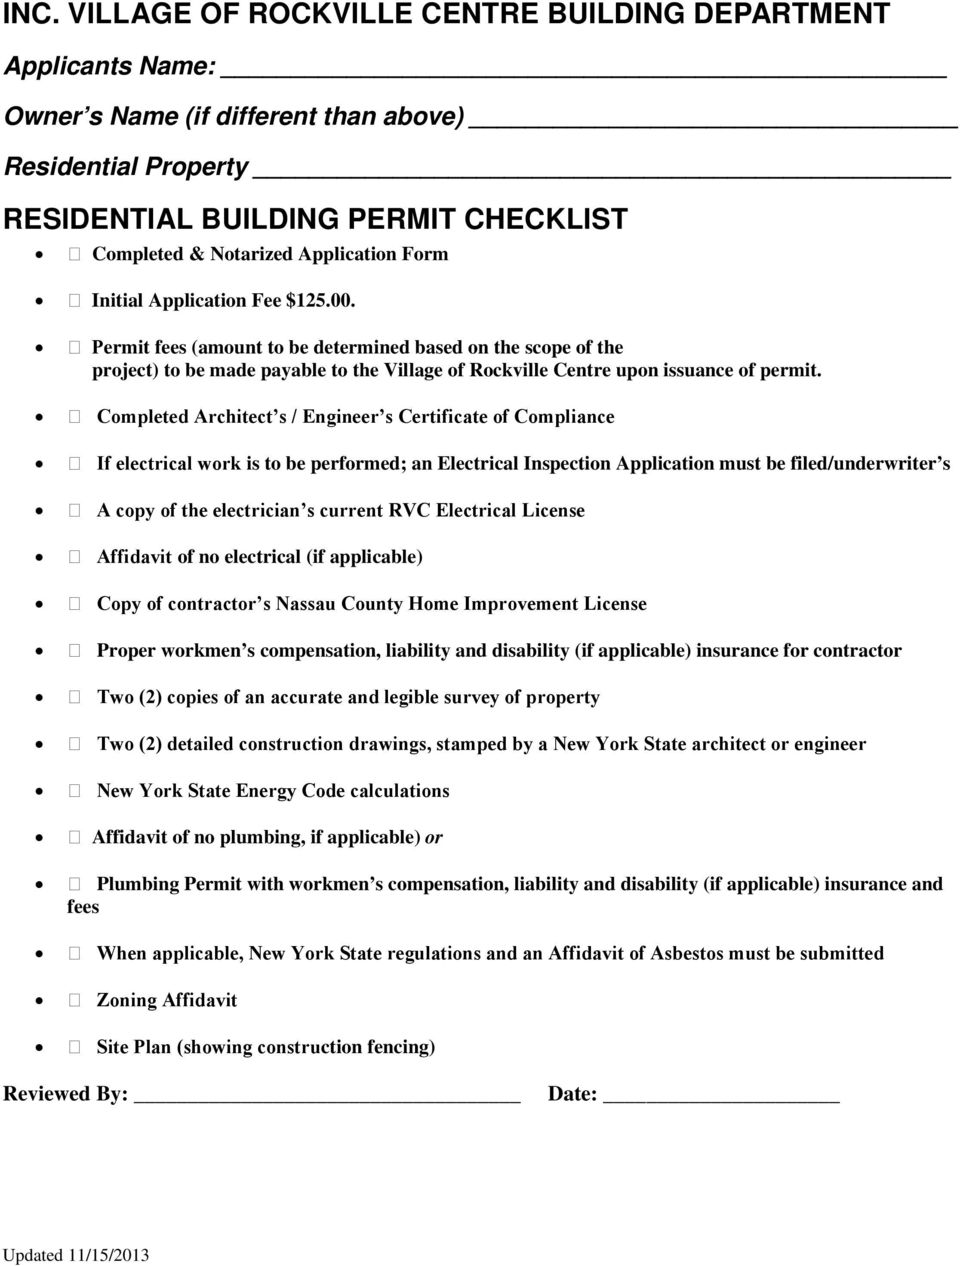 Inc Village Of Rockville Centre Building Department Pdf